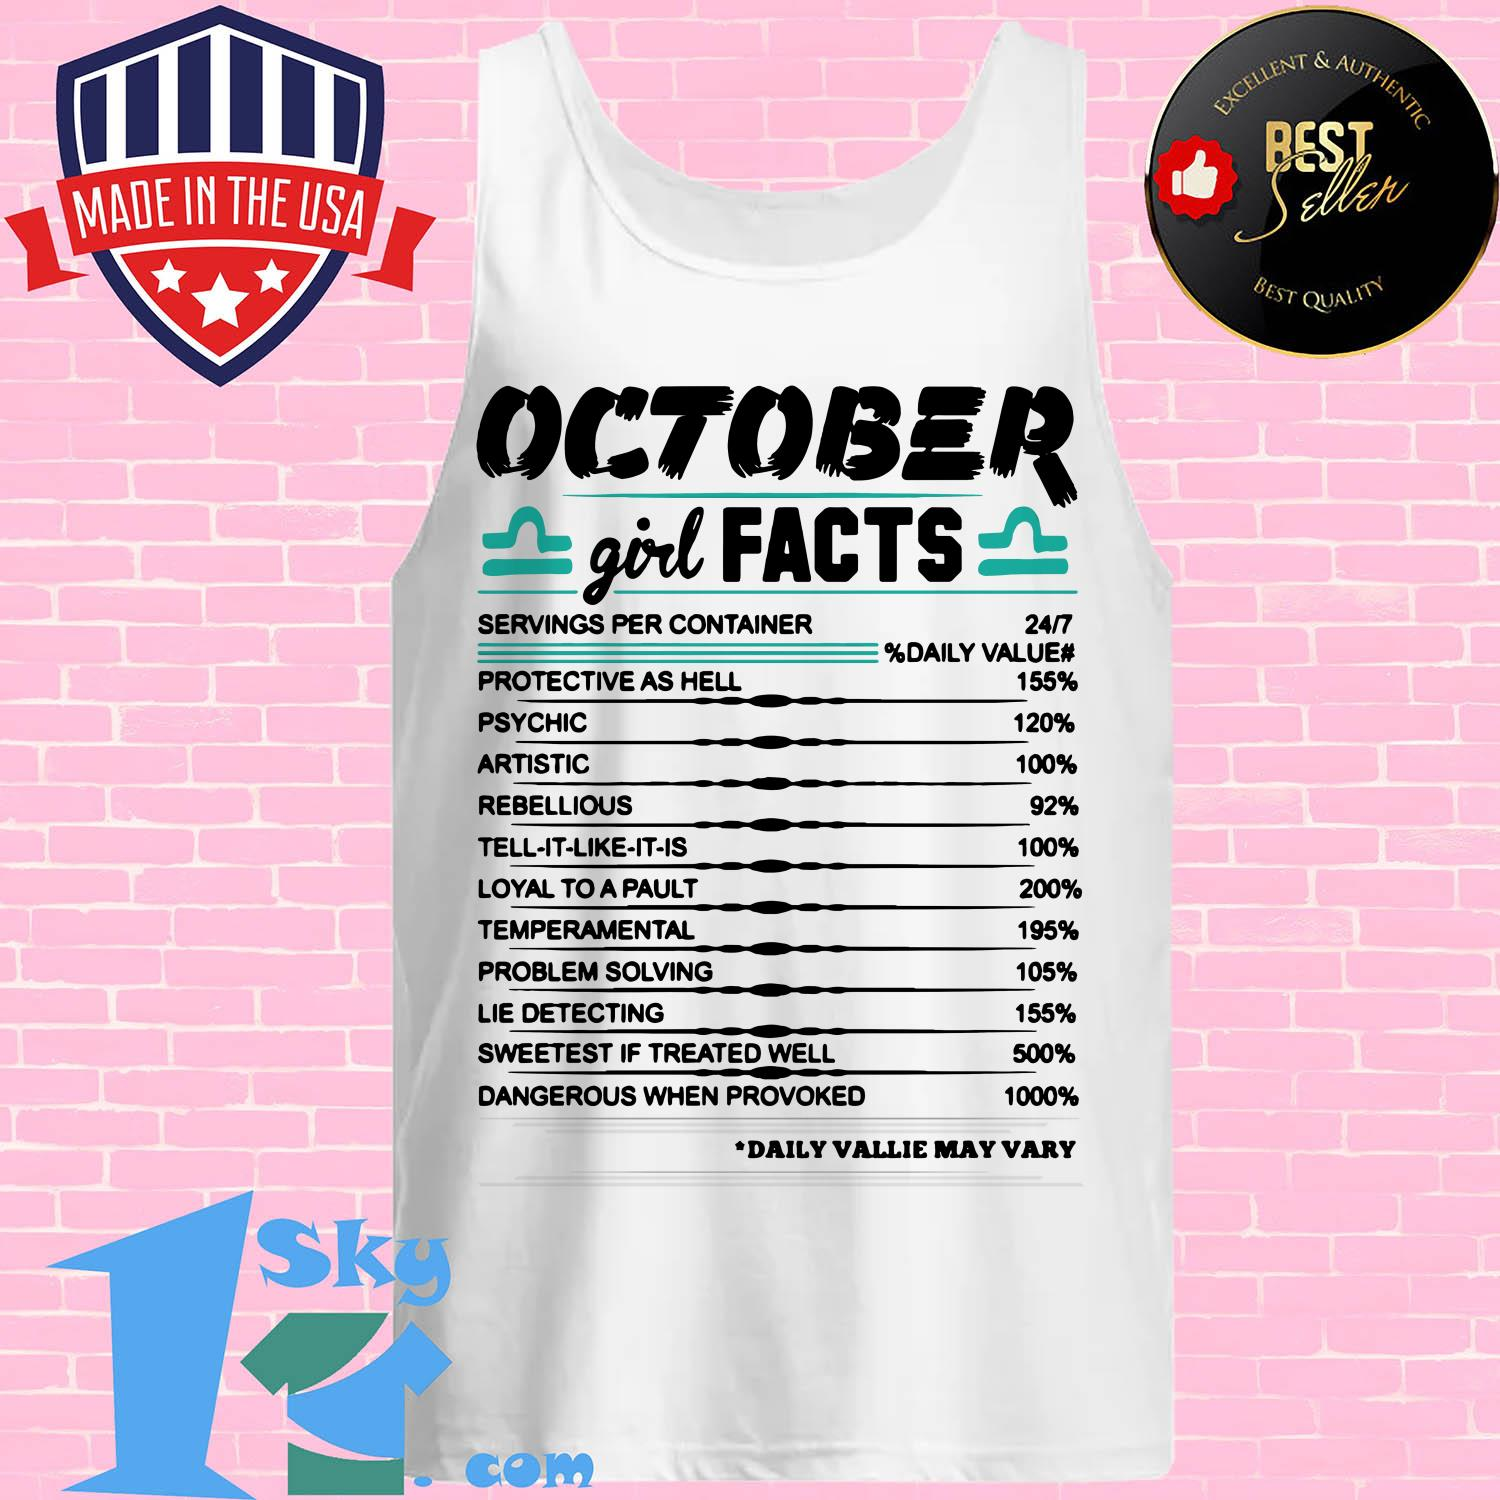 libra october girl facts serving per container protective as hell tank top - Libra October girl facts serving per container protective as hell shirt